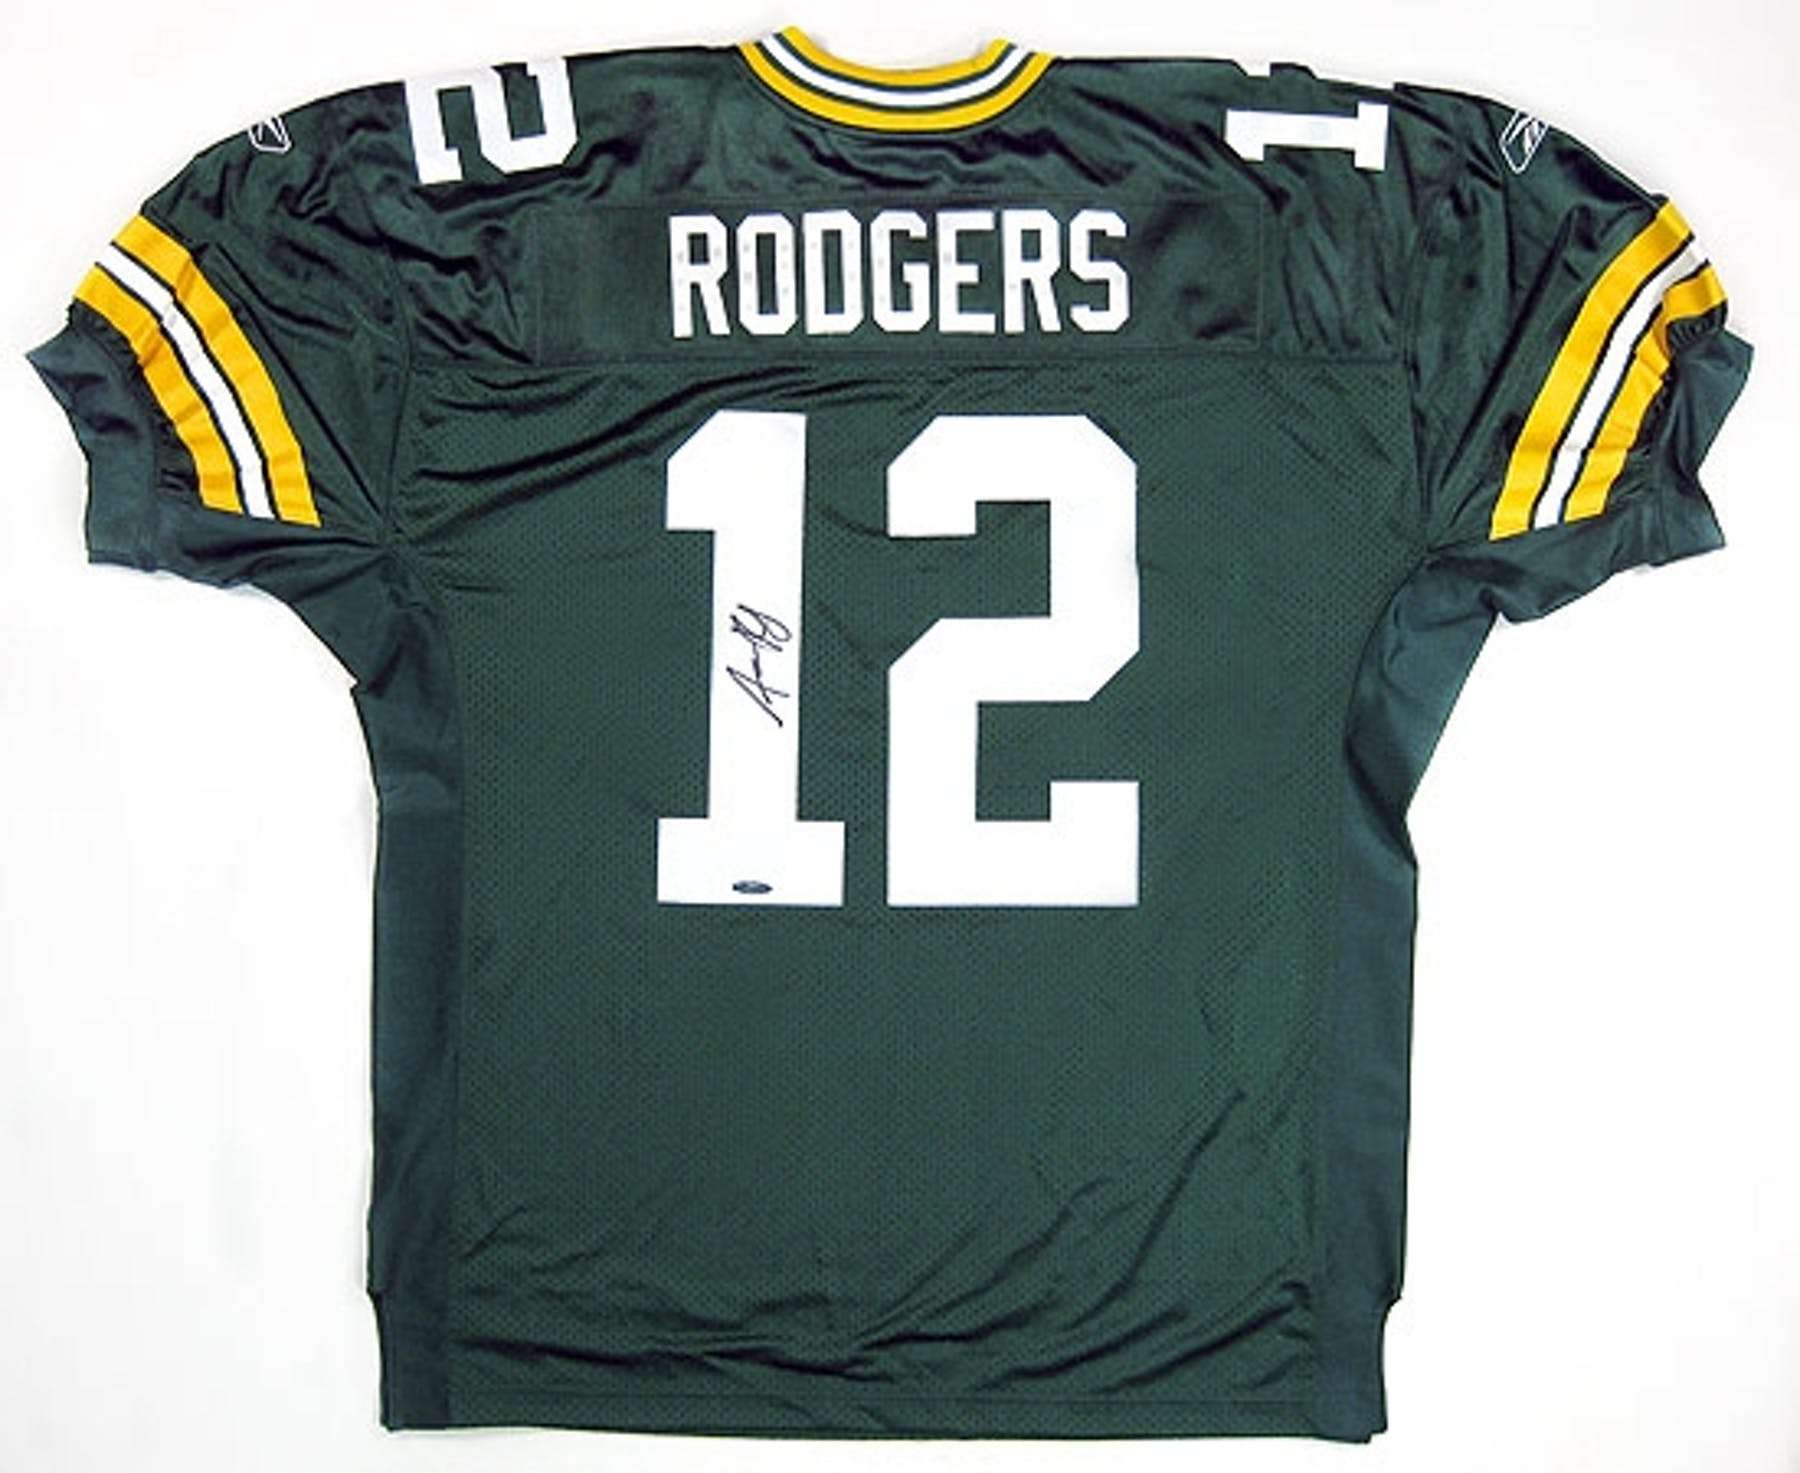 ab0082272 Aaron Rodgers Autographed Green Bay Packers Authentic Green ...